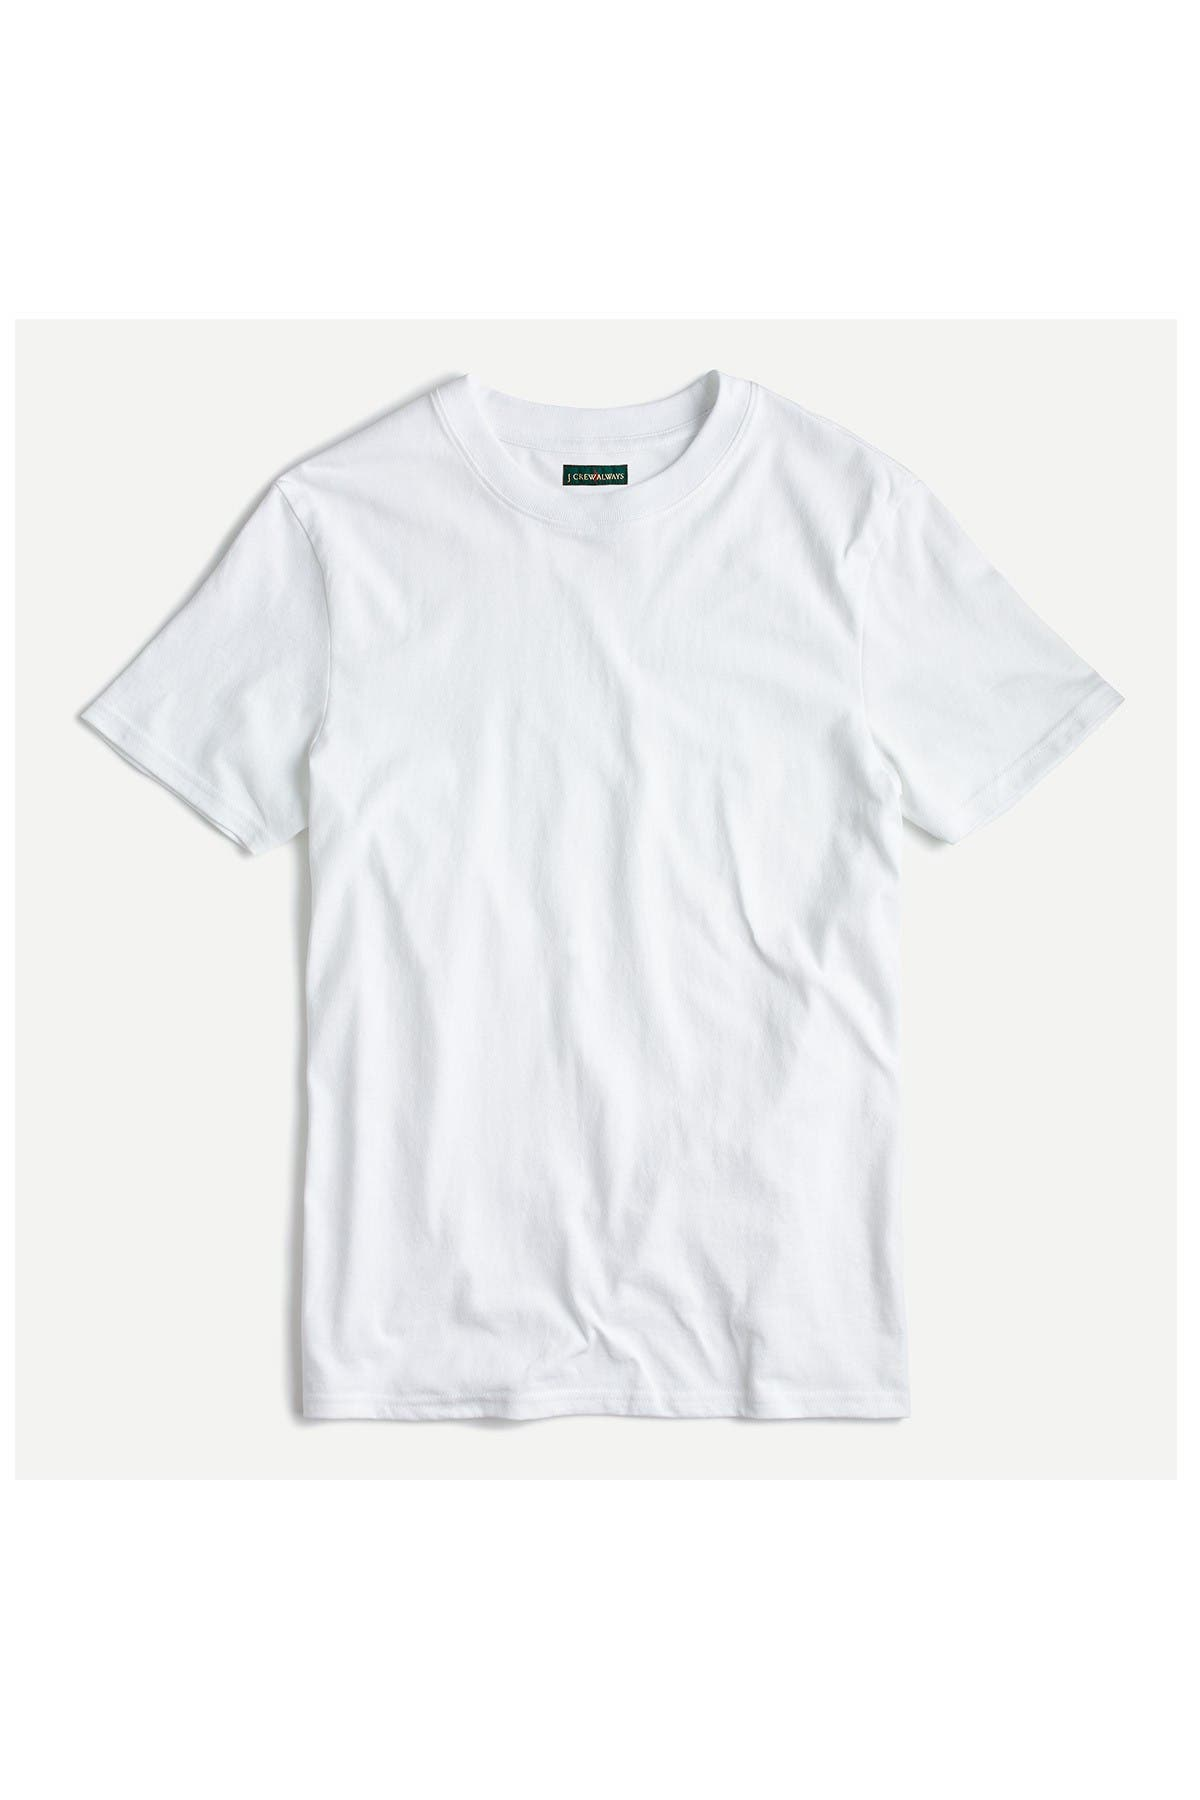 Image of J. Crew Short Sleeve Knit T-Shirt